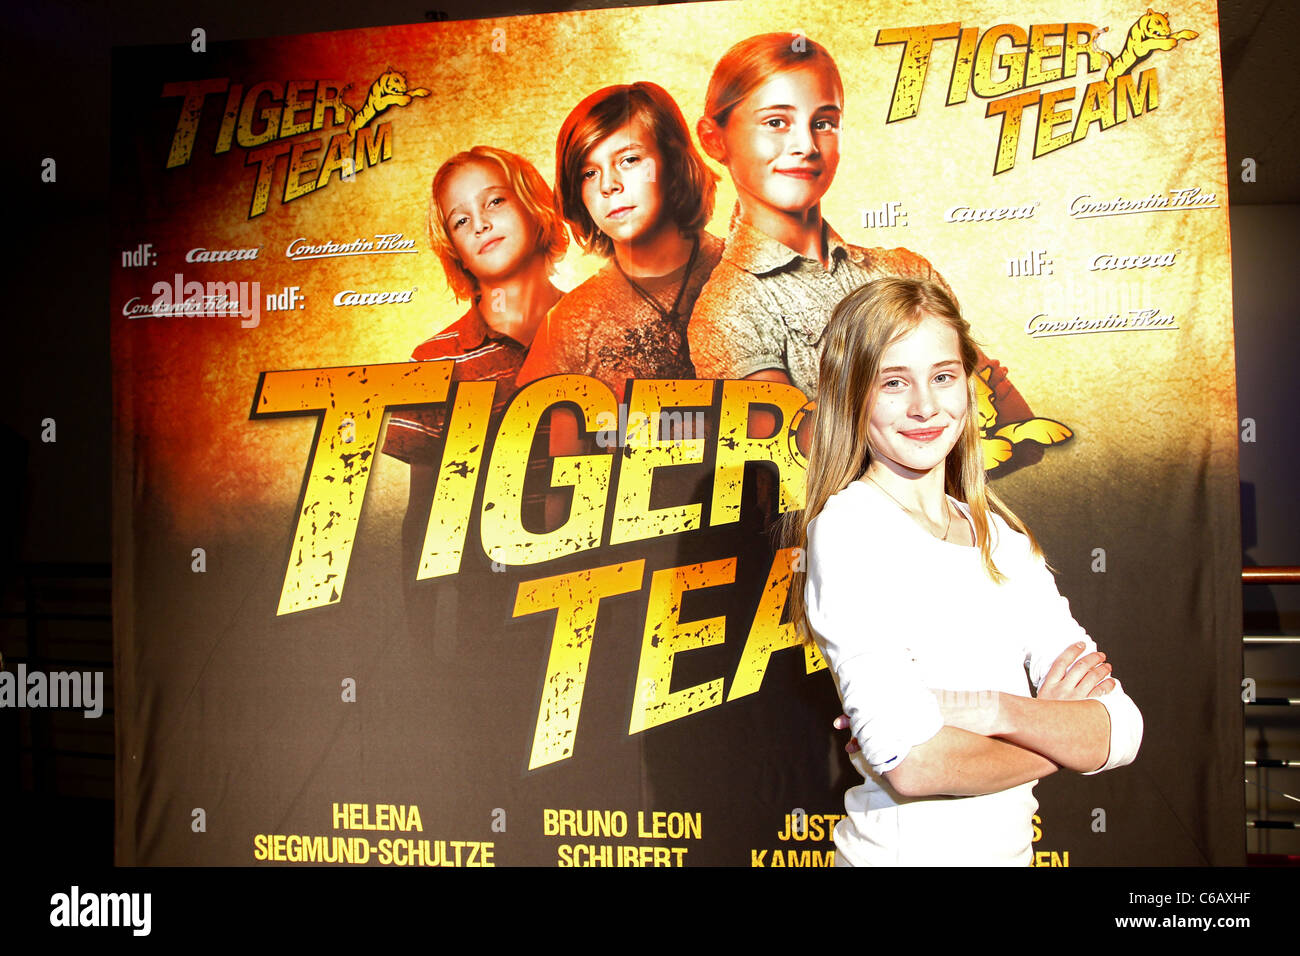 helena siegmund schultze f rderung ihres neuen films tiger team im kino cineworld dettelbach. Black Bedroom Furniture Sets. Home Design Ideas